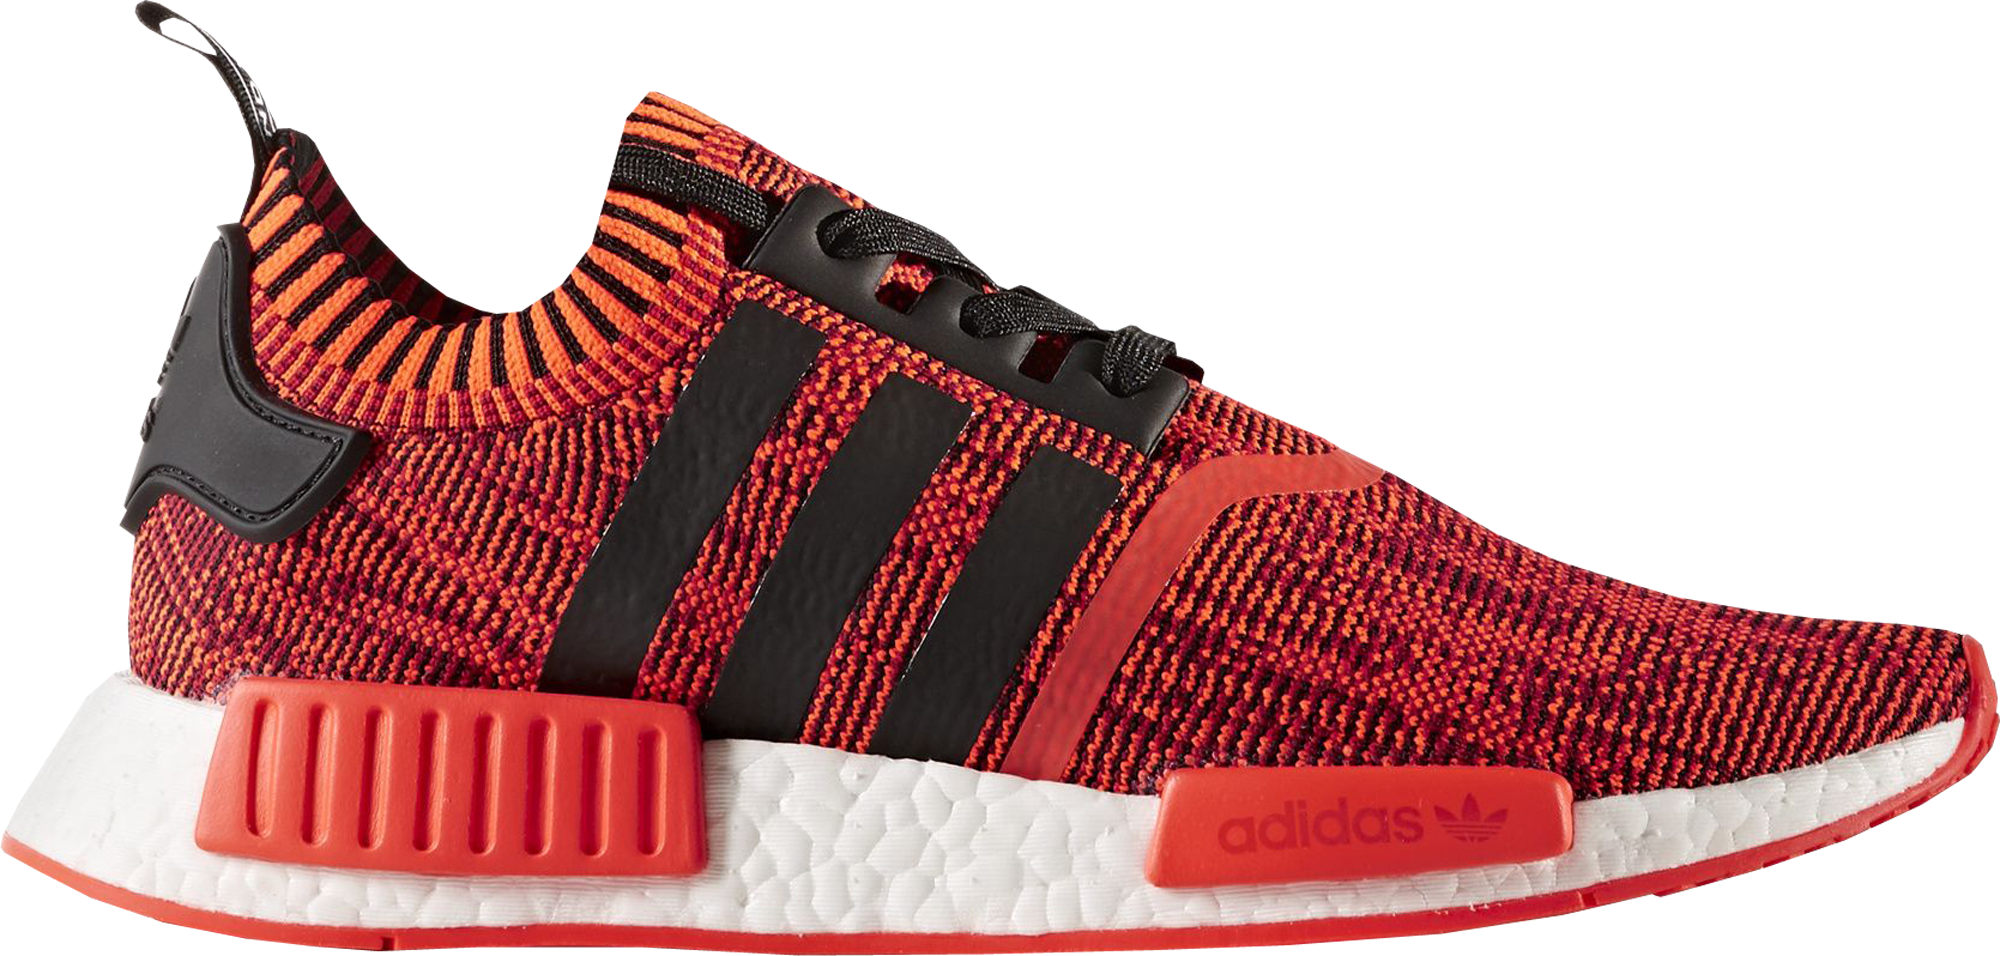 Nmd R1 W Adidas s76013 red